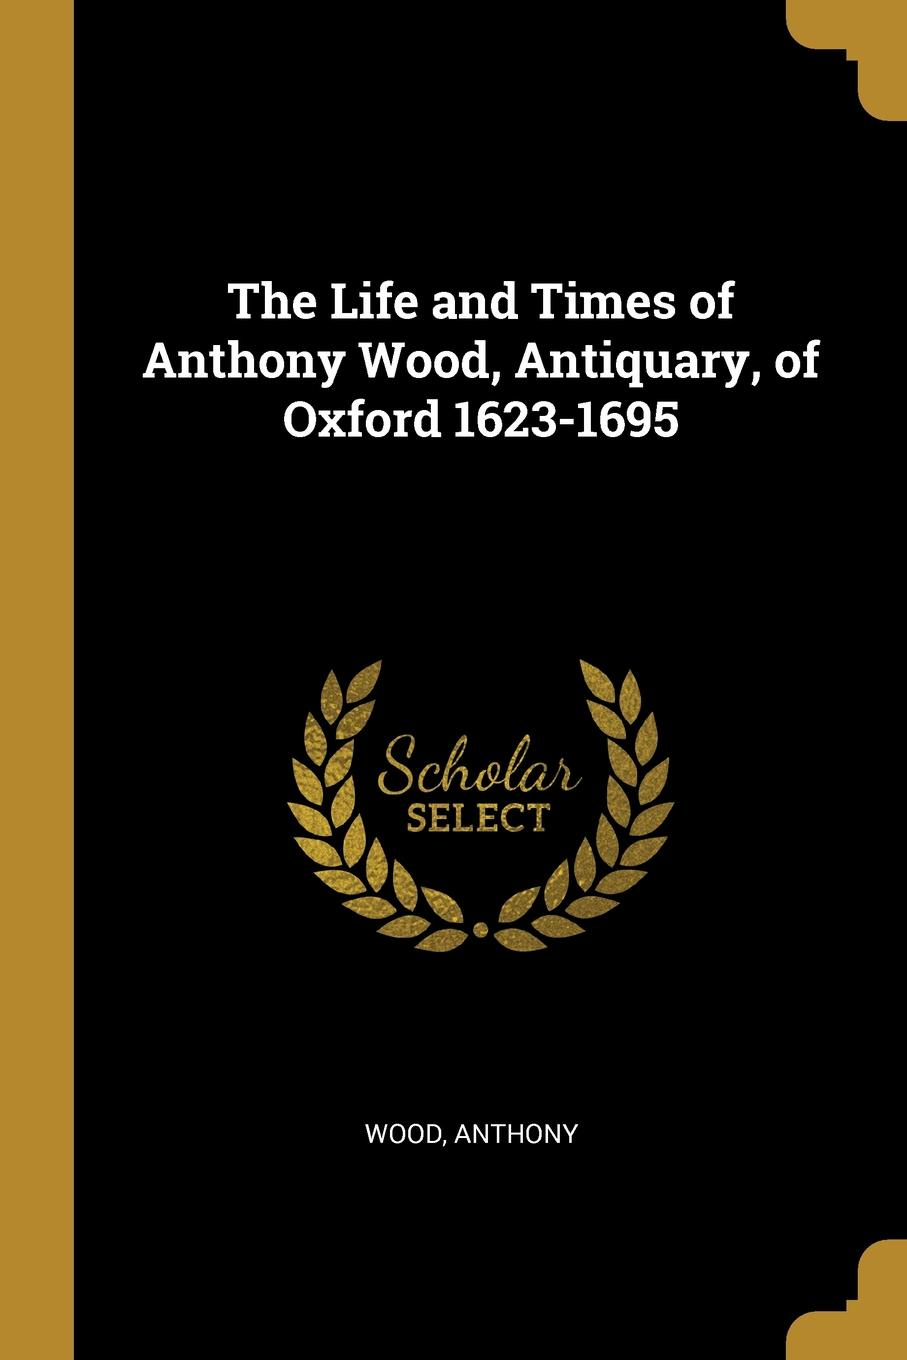 The Life and Times of Anthony Wood, Antiquary, of Oxford 1623-1695